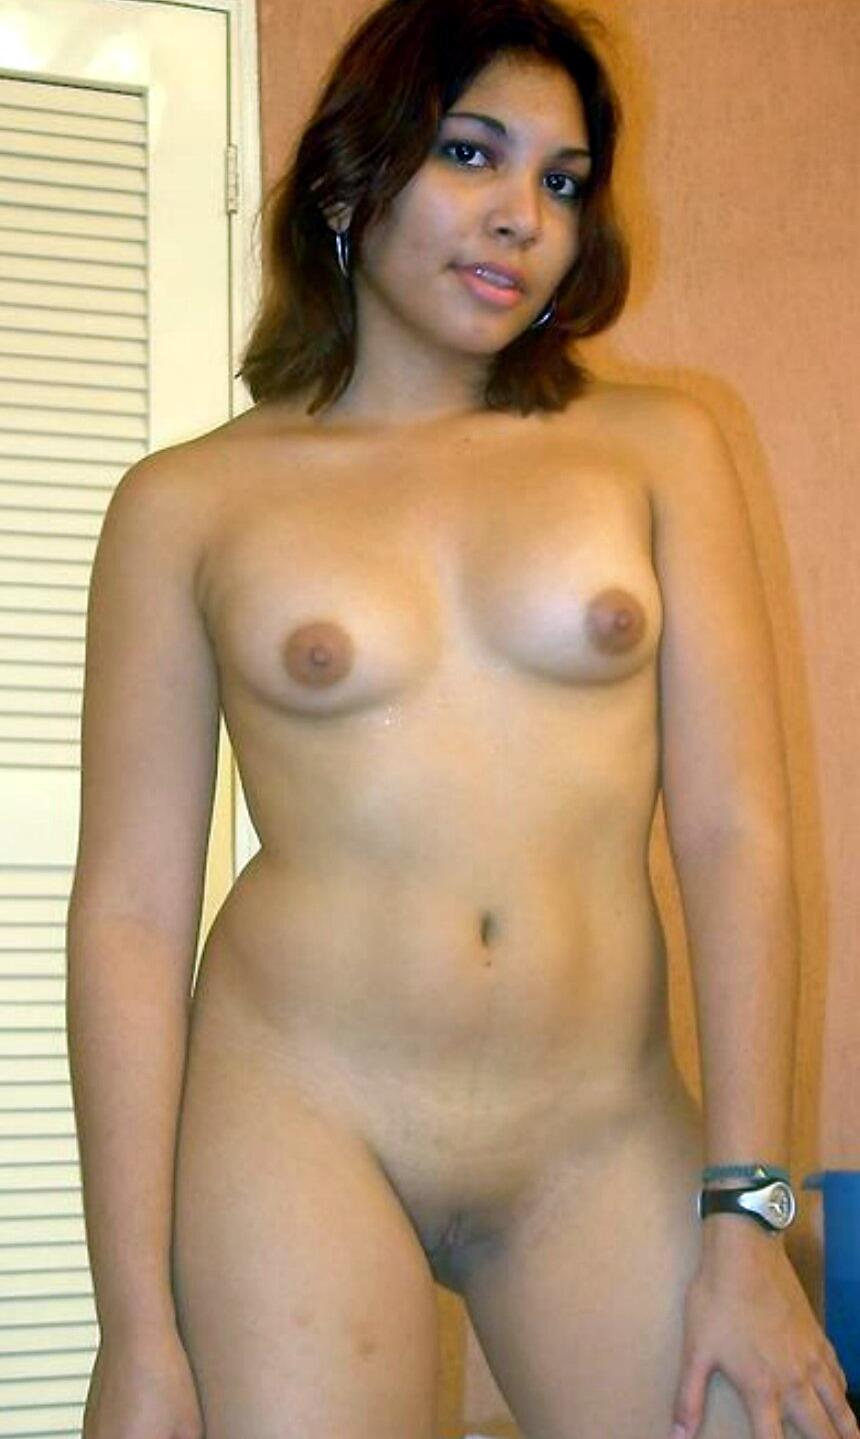 indian porn girls naked pron pictures - metaingles